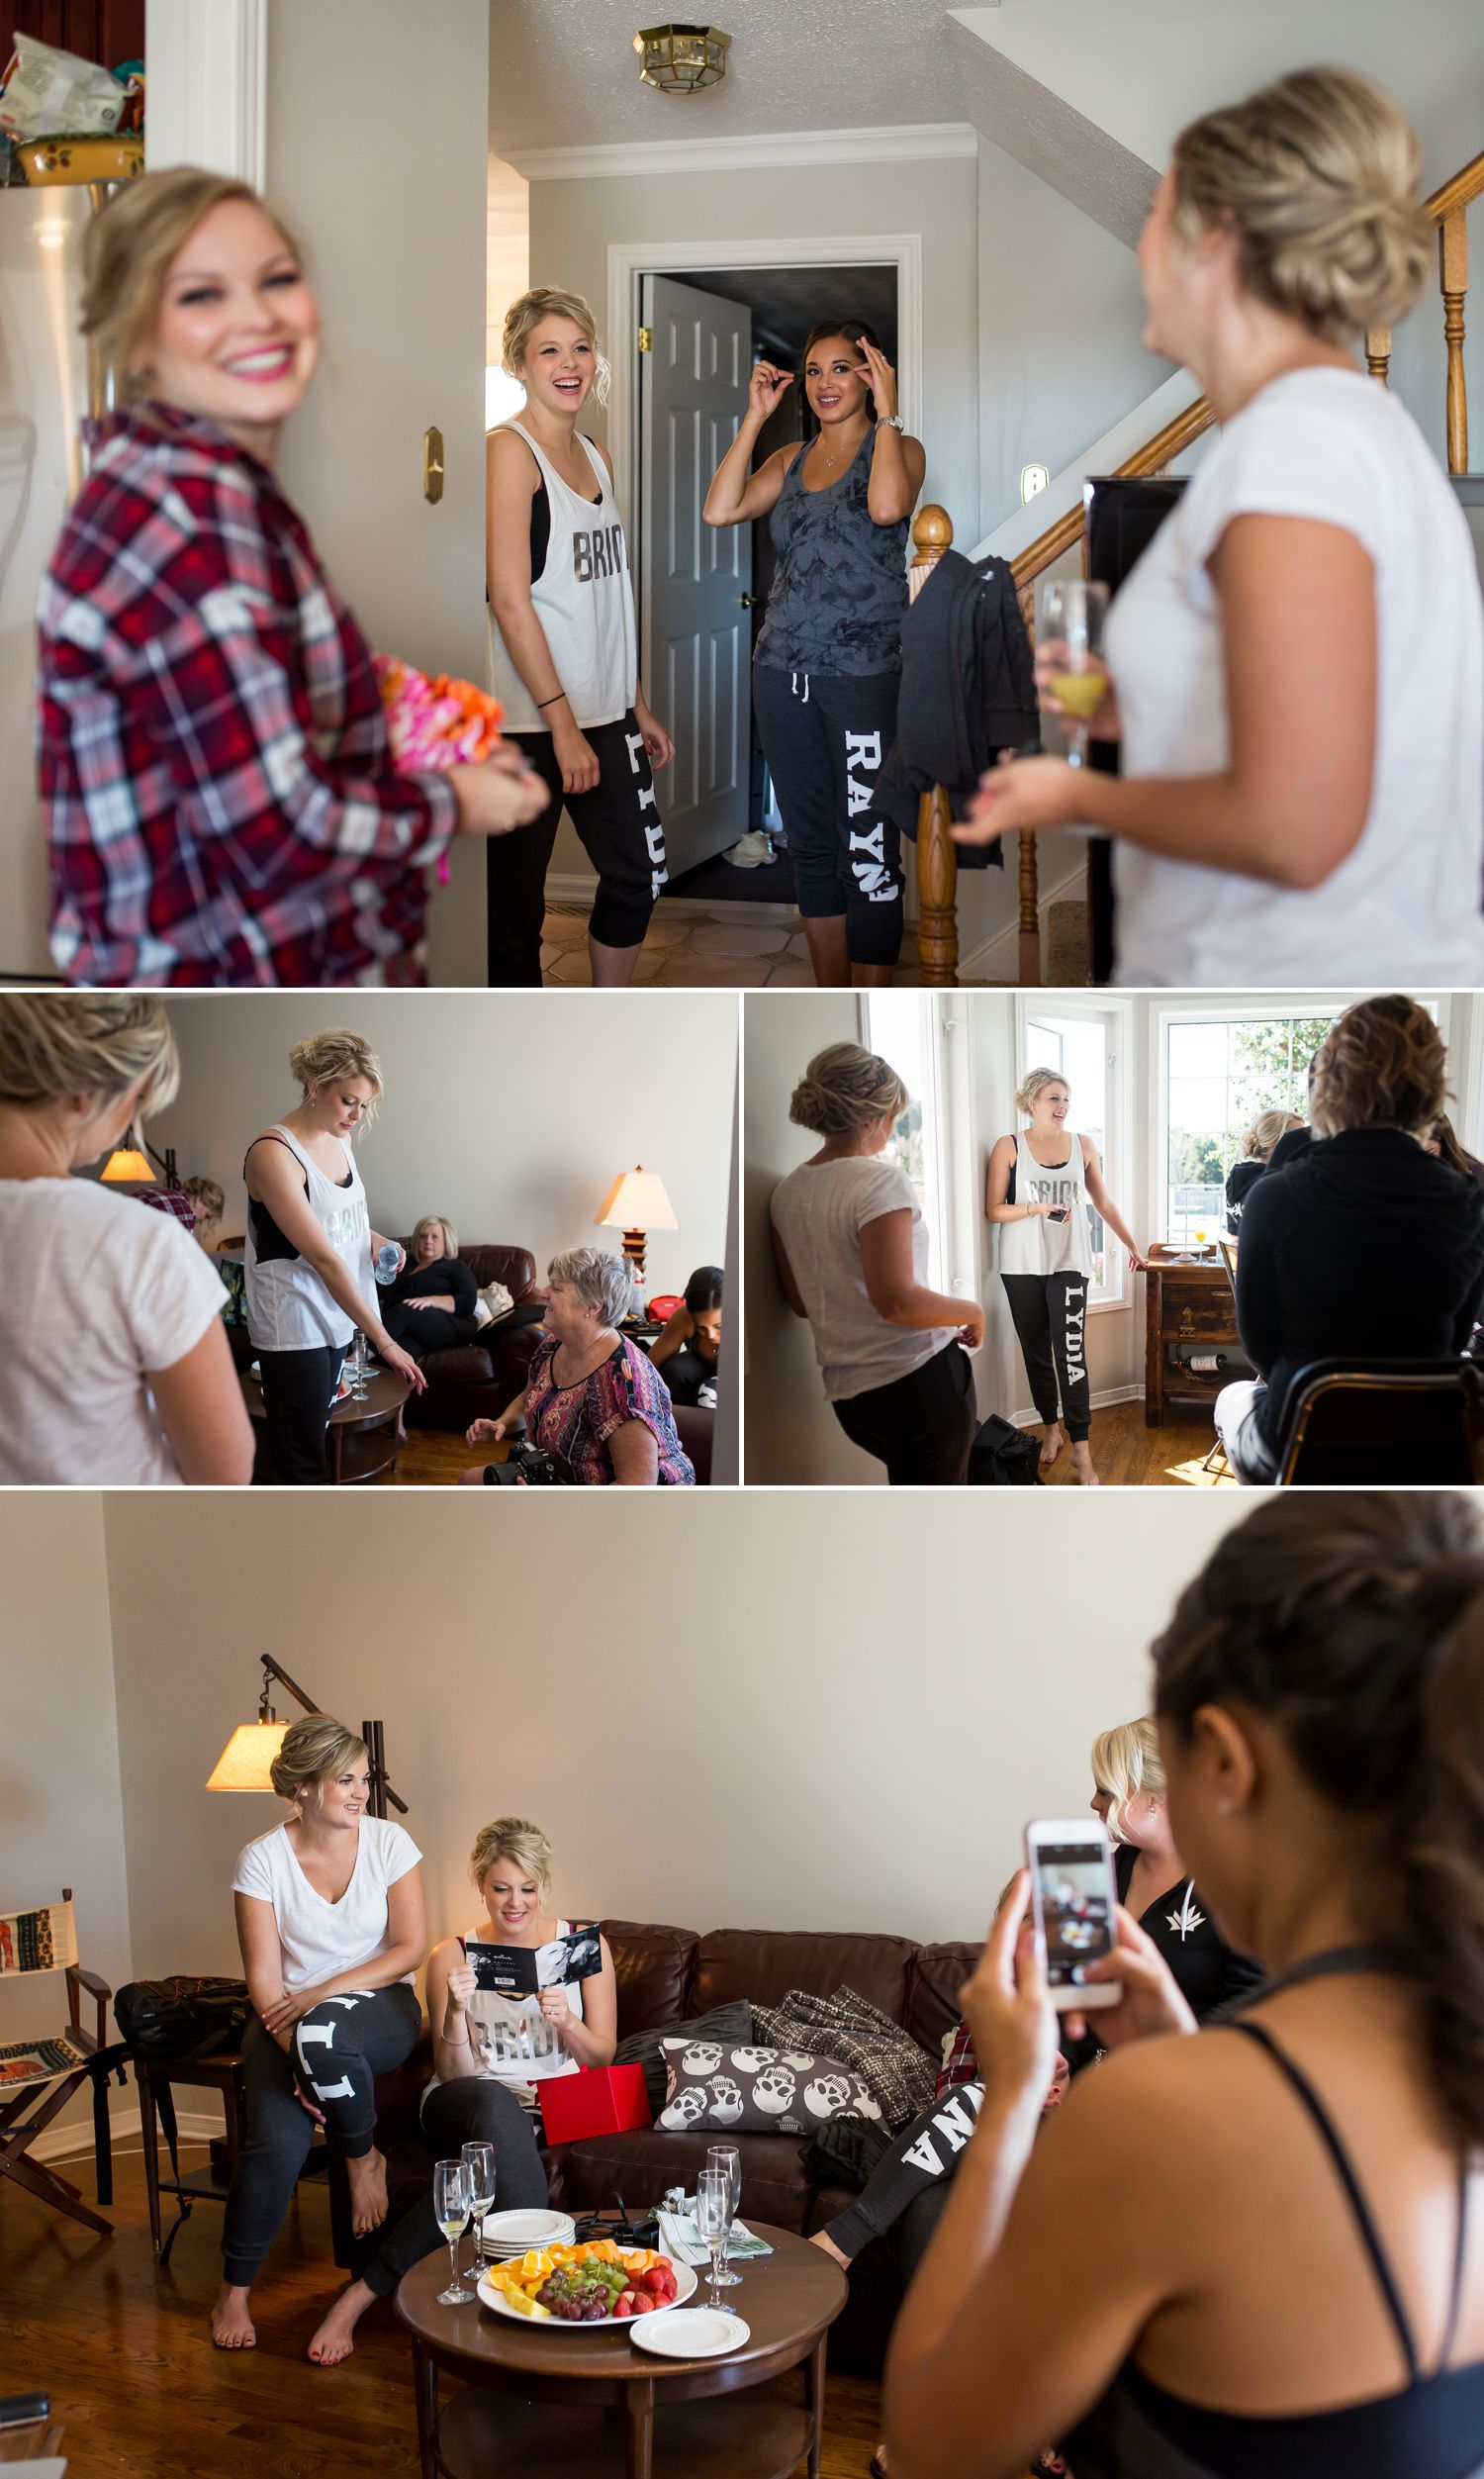 The bride getting ready at home with her bridesmaids and family